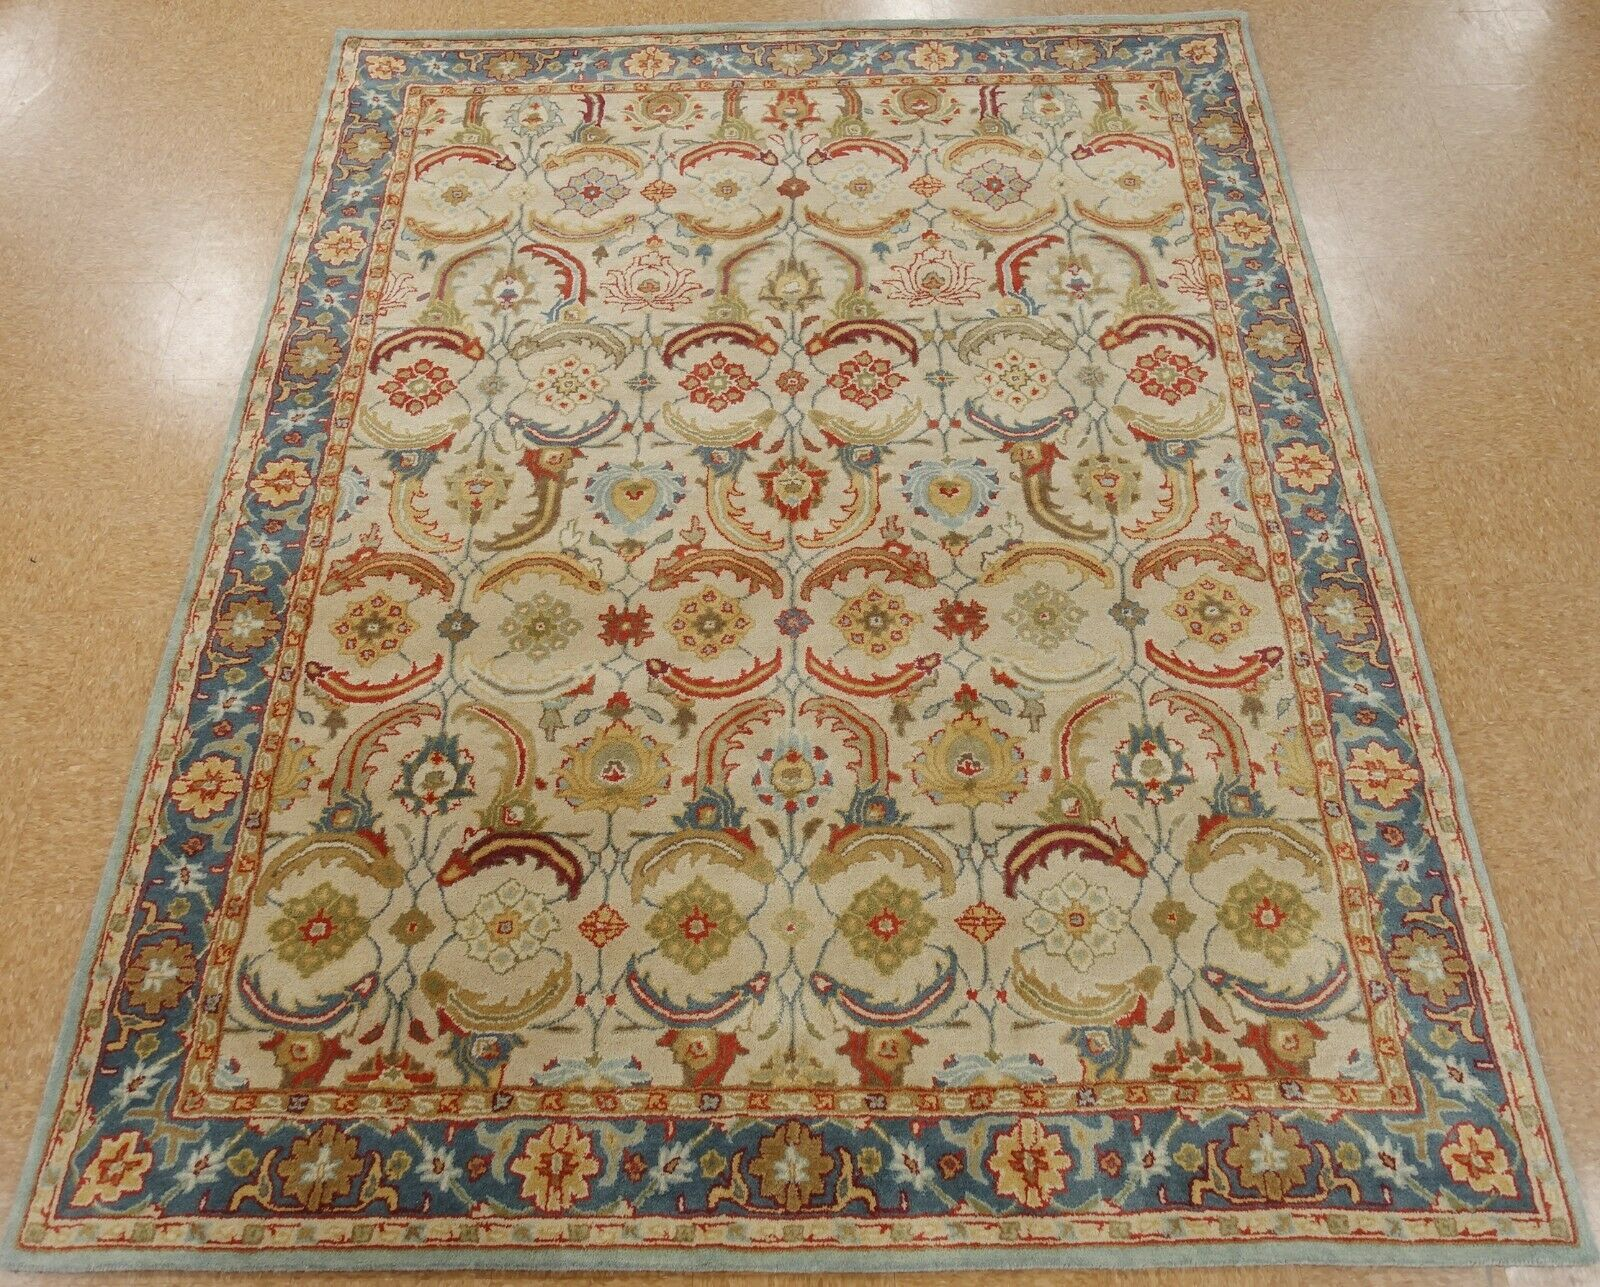 Pottery Barn Channing 8 X 10 Area Rug 3677168 For Sale Online